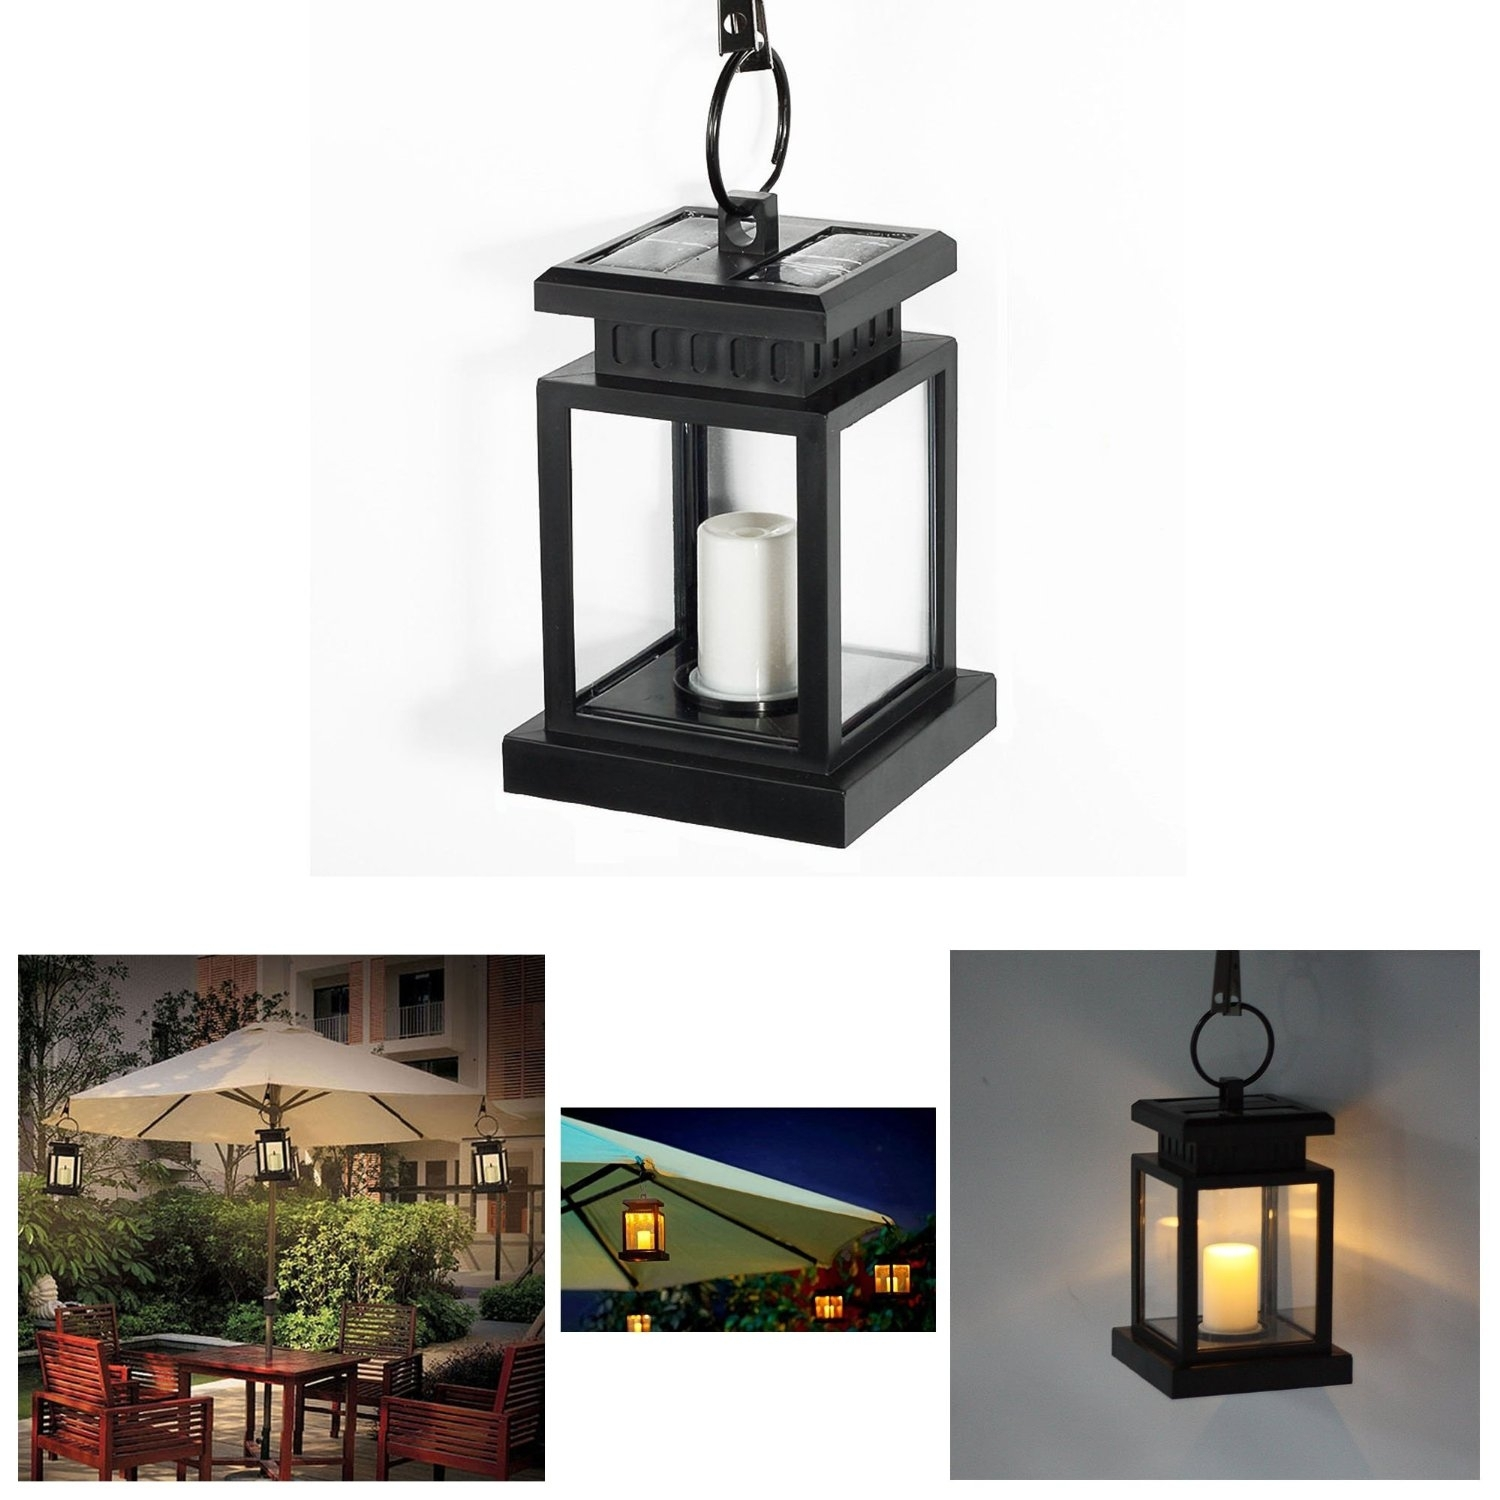 Solar Powered Hanging Umbrella Lantern Candle Led Light With Clamp Inside Outdoor Hanging Lanterns Candles (View 4 of 15)